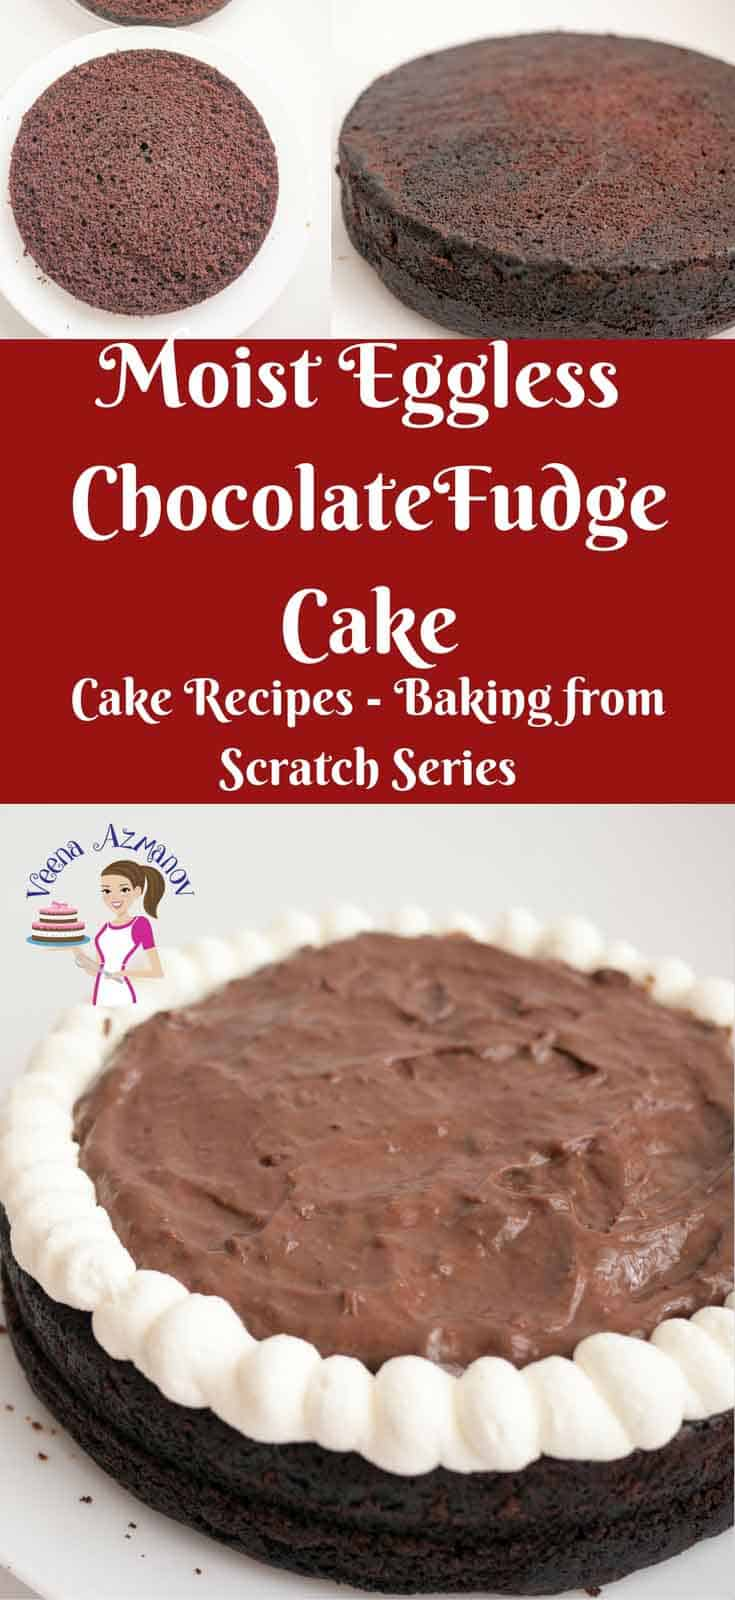 This moist eggless chocolate fudge cake has a firm texture with soft crumb that melts in the mouth. Simple and easy to make and so versatile with so many flavor variations. Try it with rich buttercream frosting, light whipped cream or fill it with an indulgent chocolate mousse filling like I have. via veenaazmanvo.com